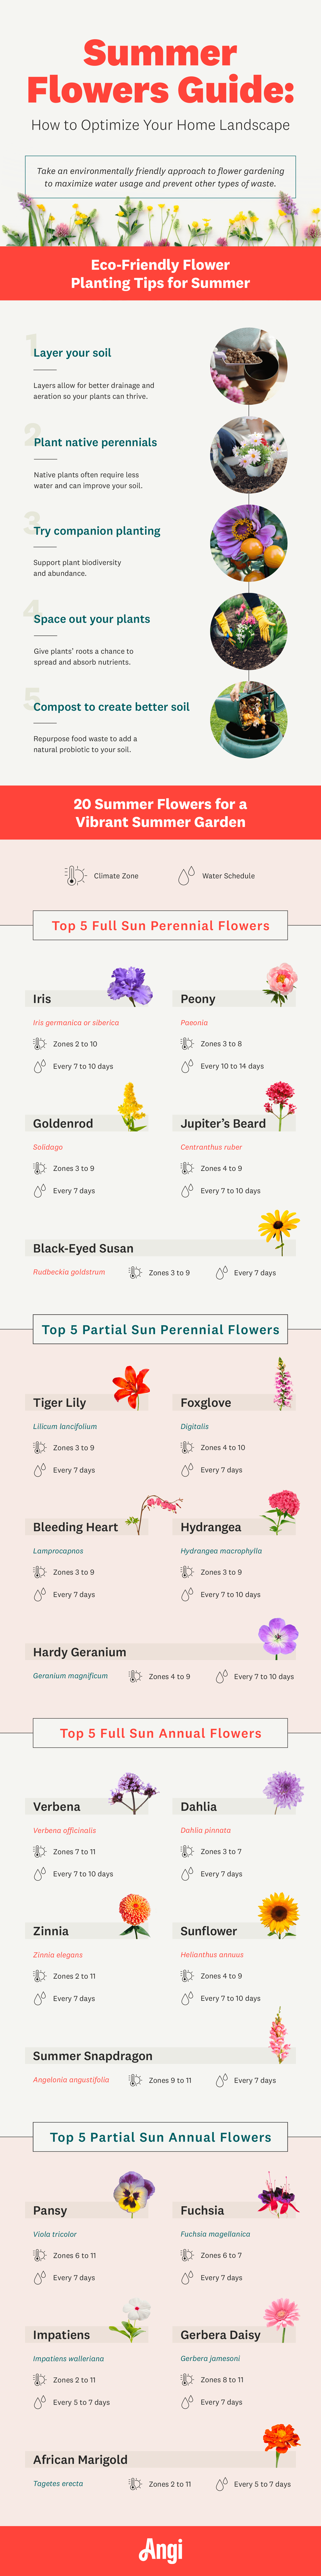 Summer Flowers for your Eco-Friendly Garden [Visual] | ecogreenlove